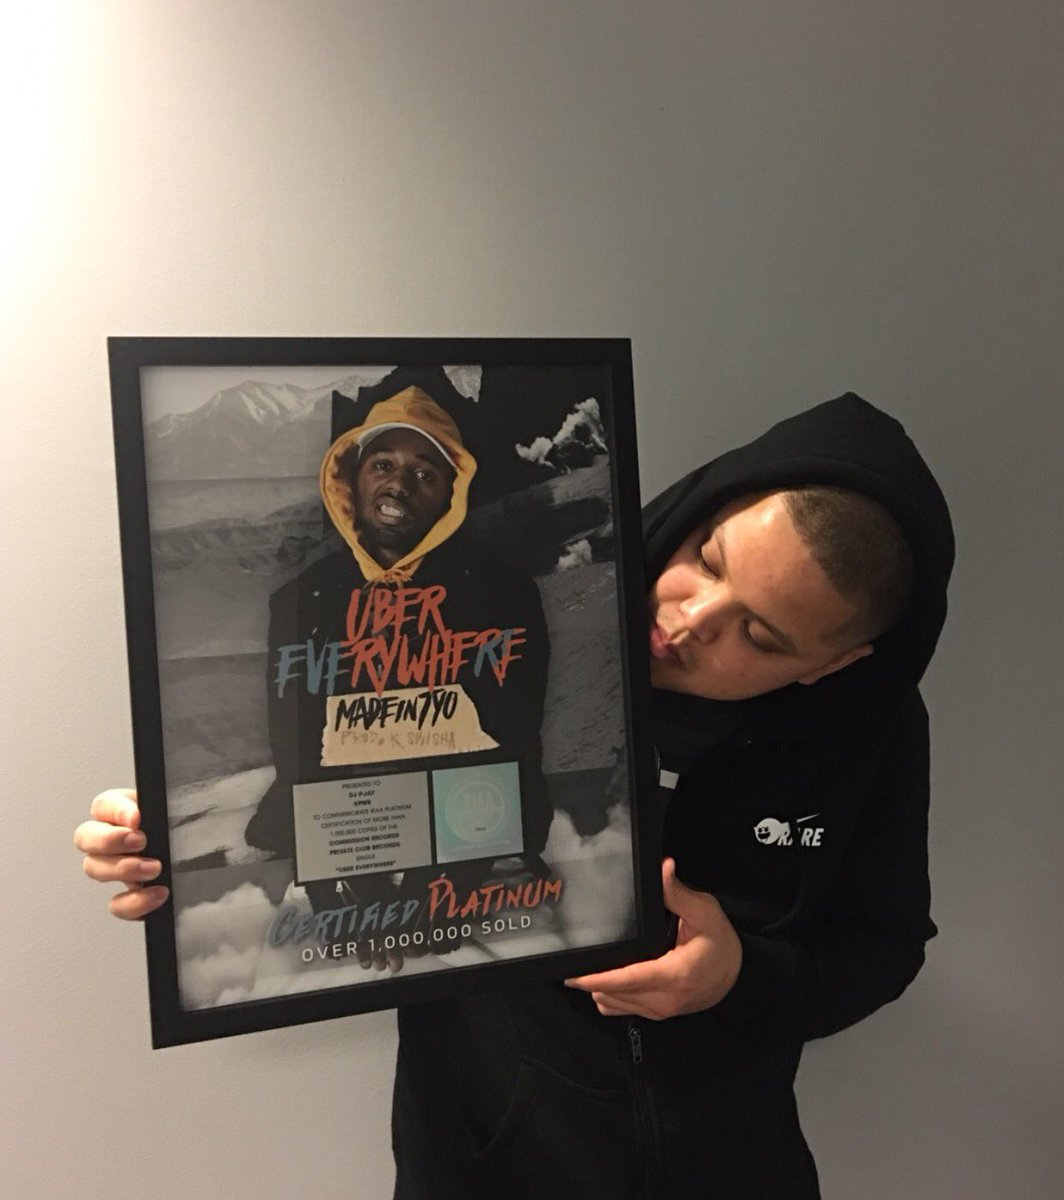 Big ups to @madeintyo for the #UberEverywhere plaque ! Hanging this bad boy in the home studio! ✌